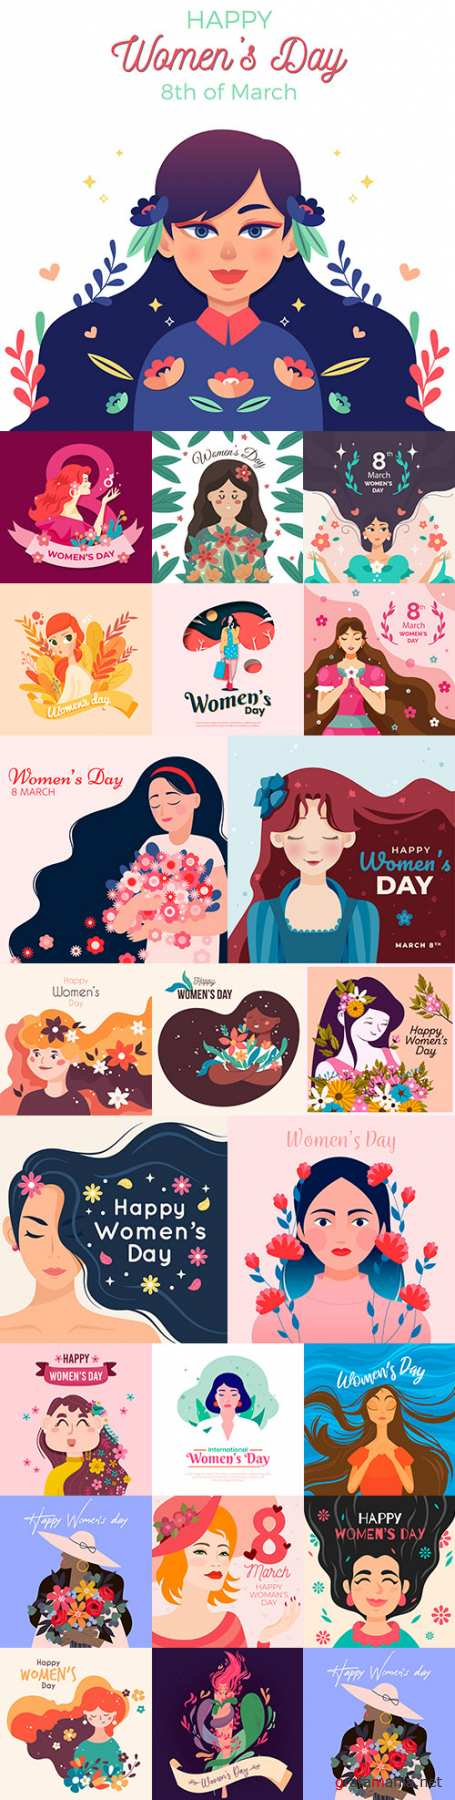 March 8 and Women's Day illustration flat big collection